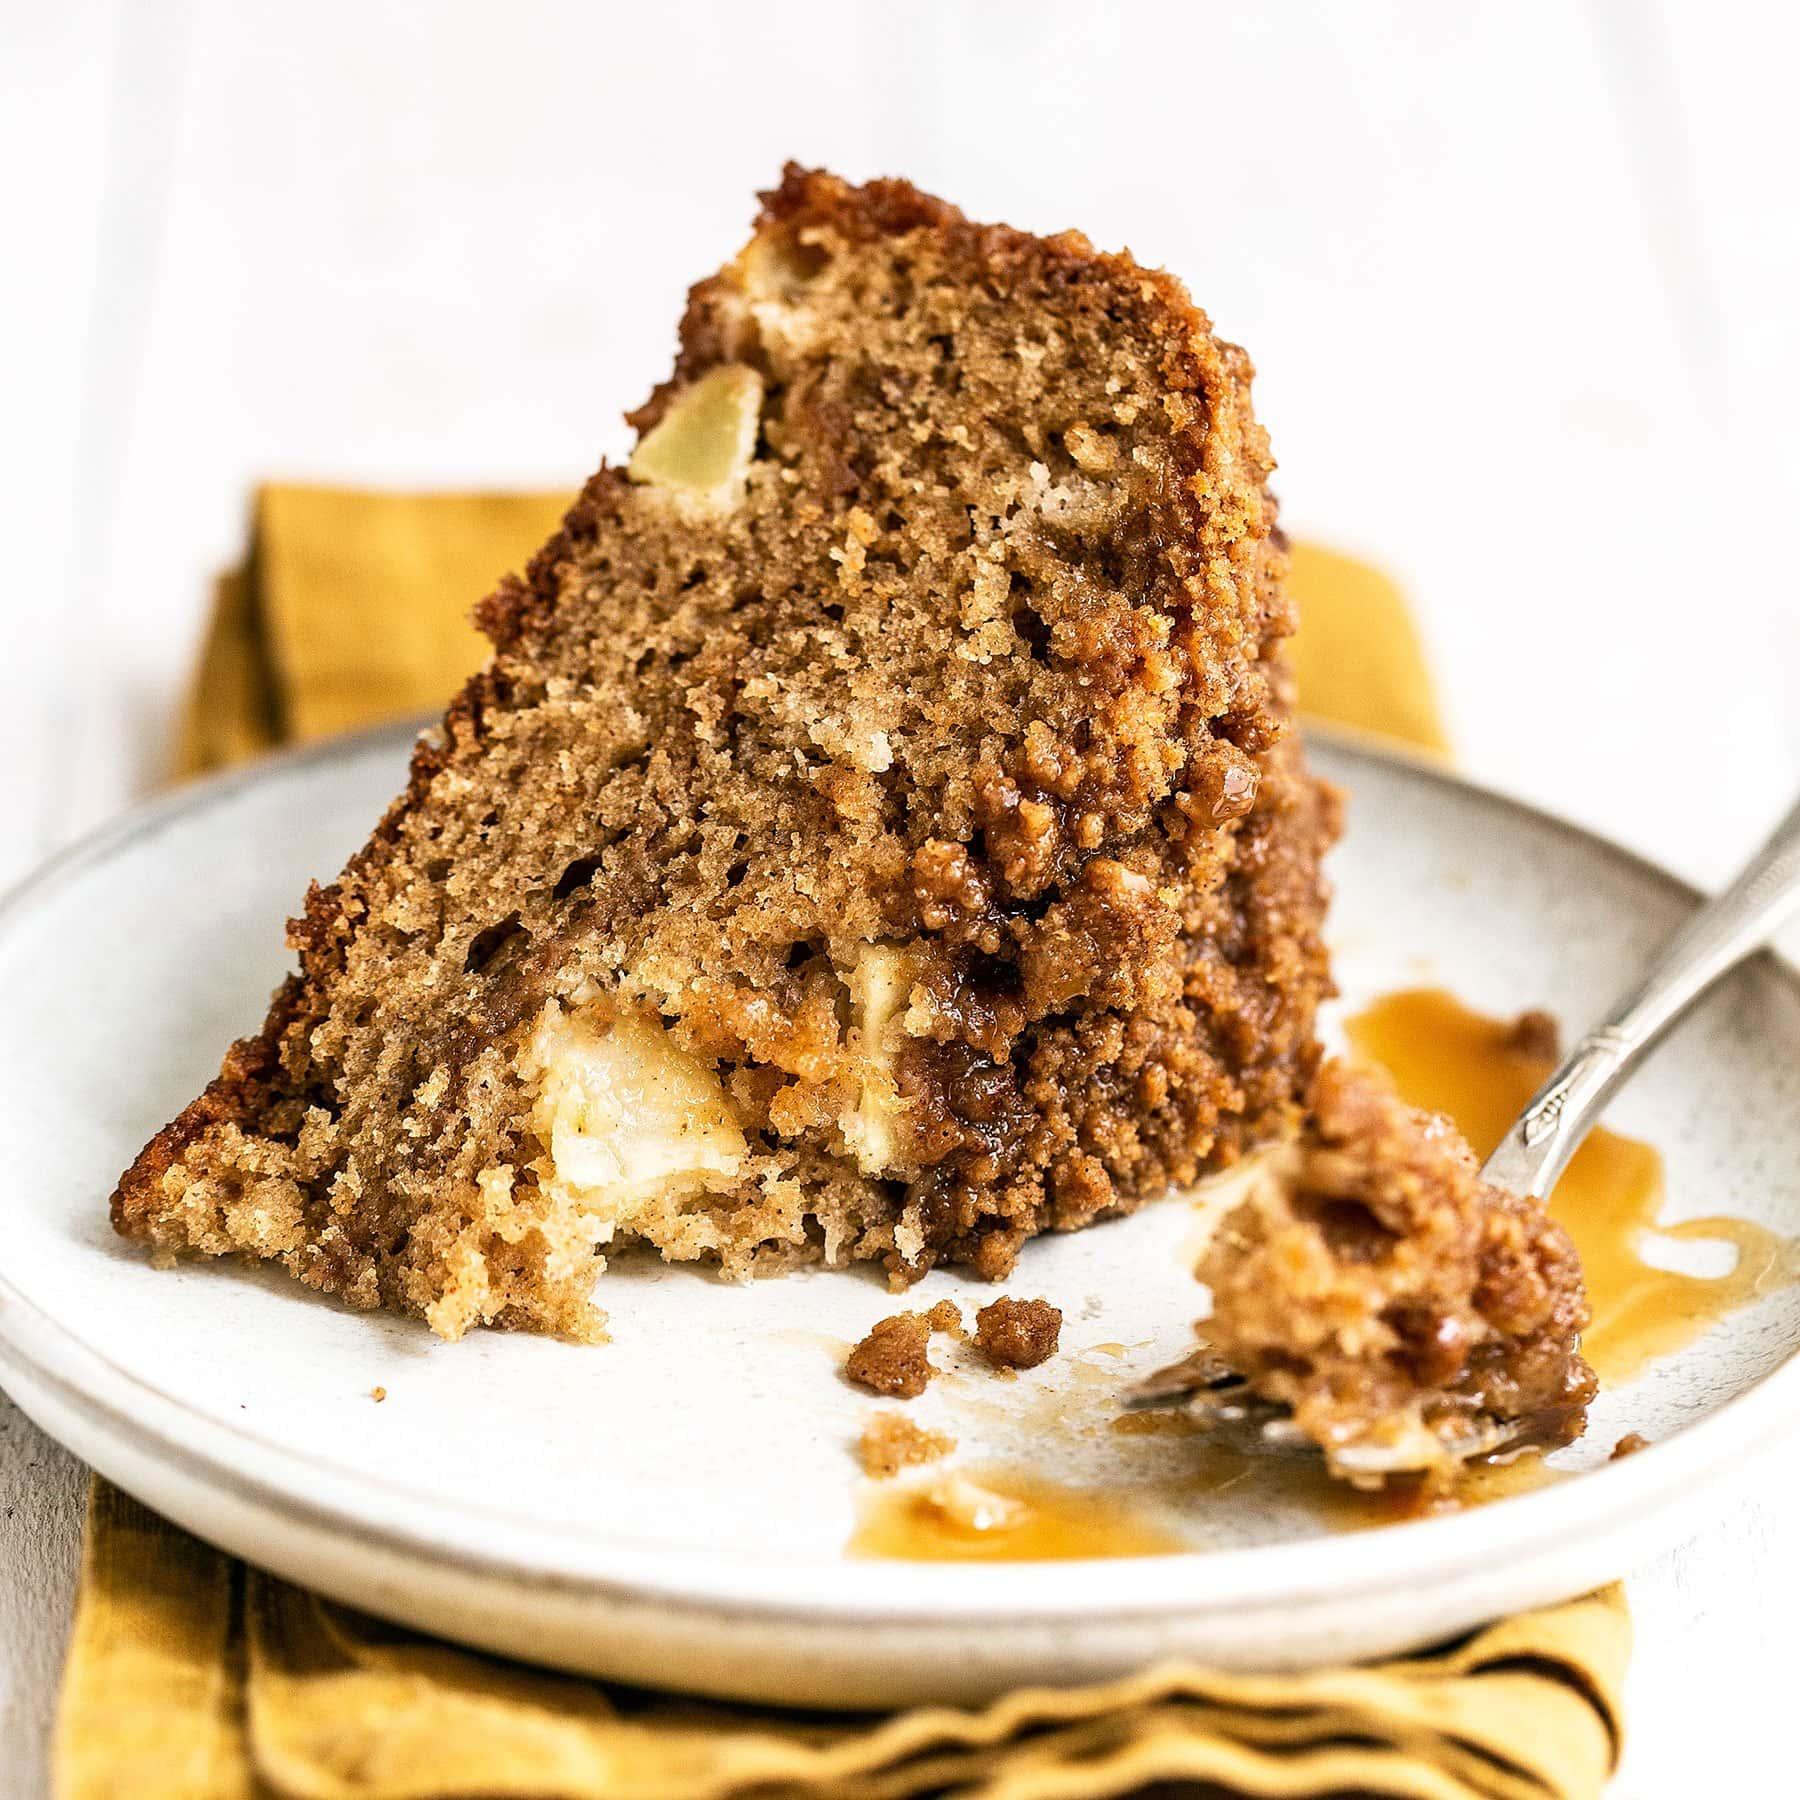 slice of caramel apple coffee cake with a bite taken out